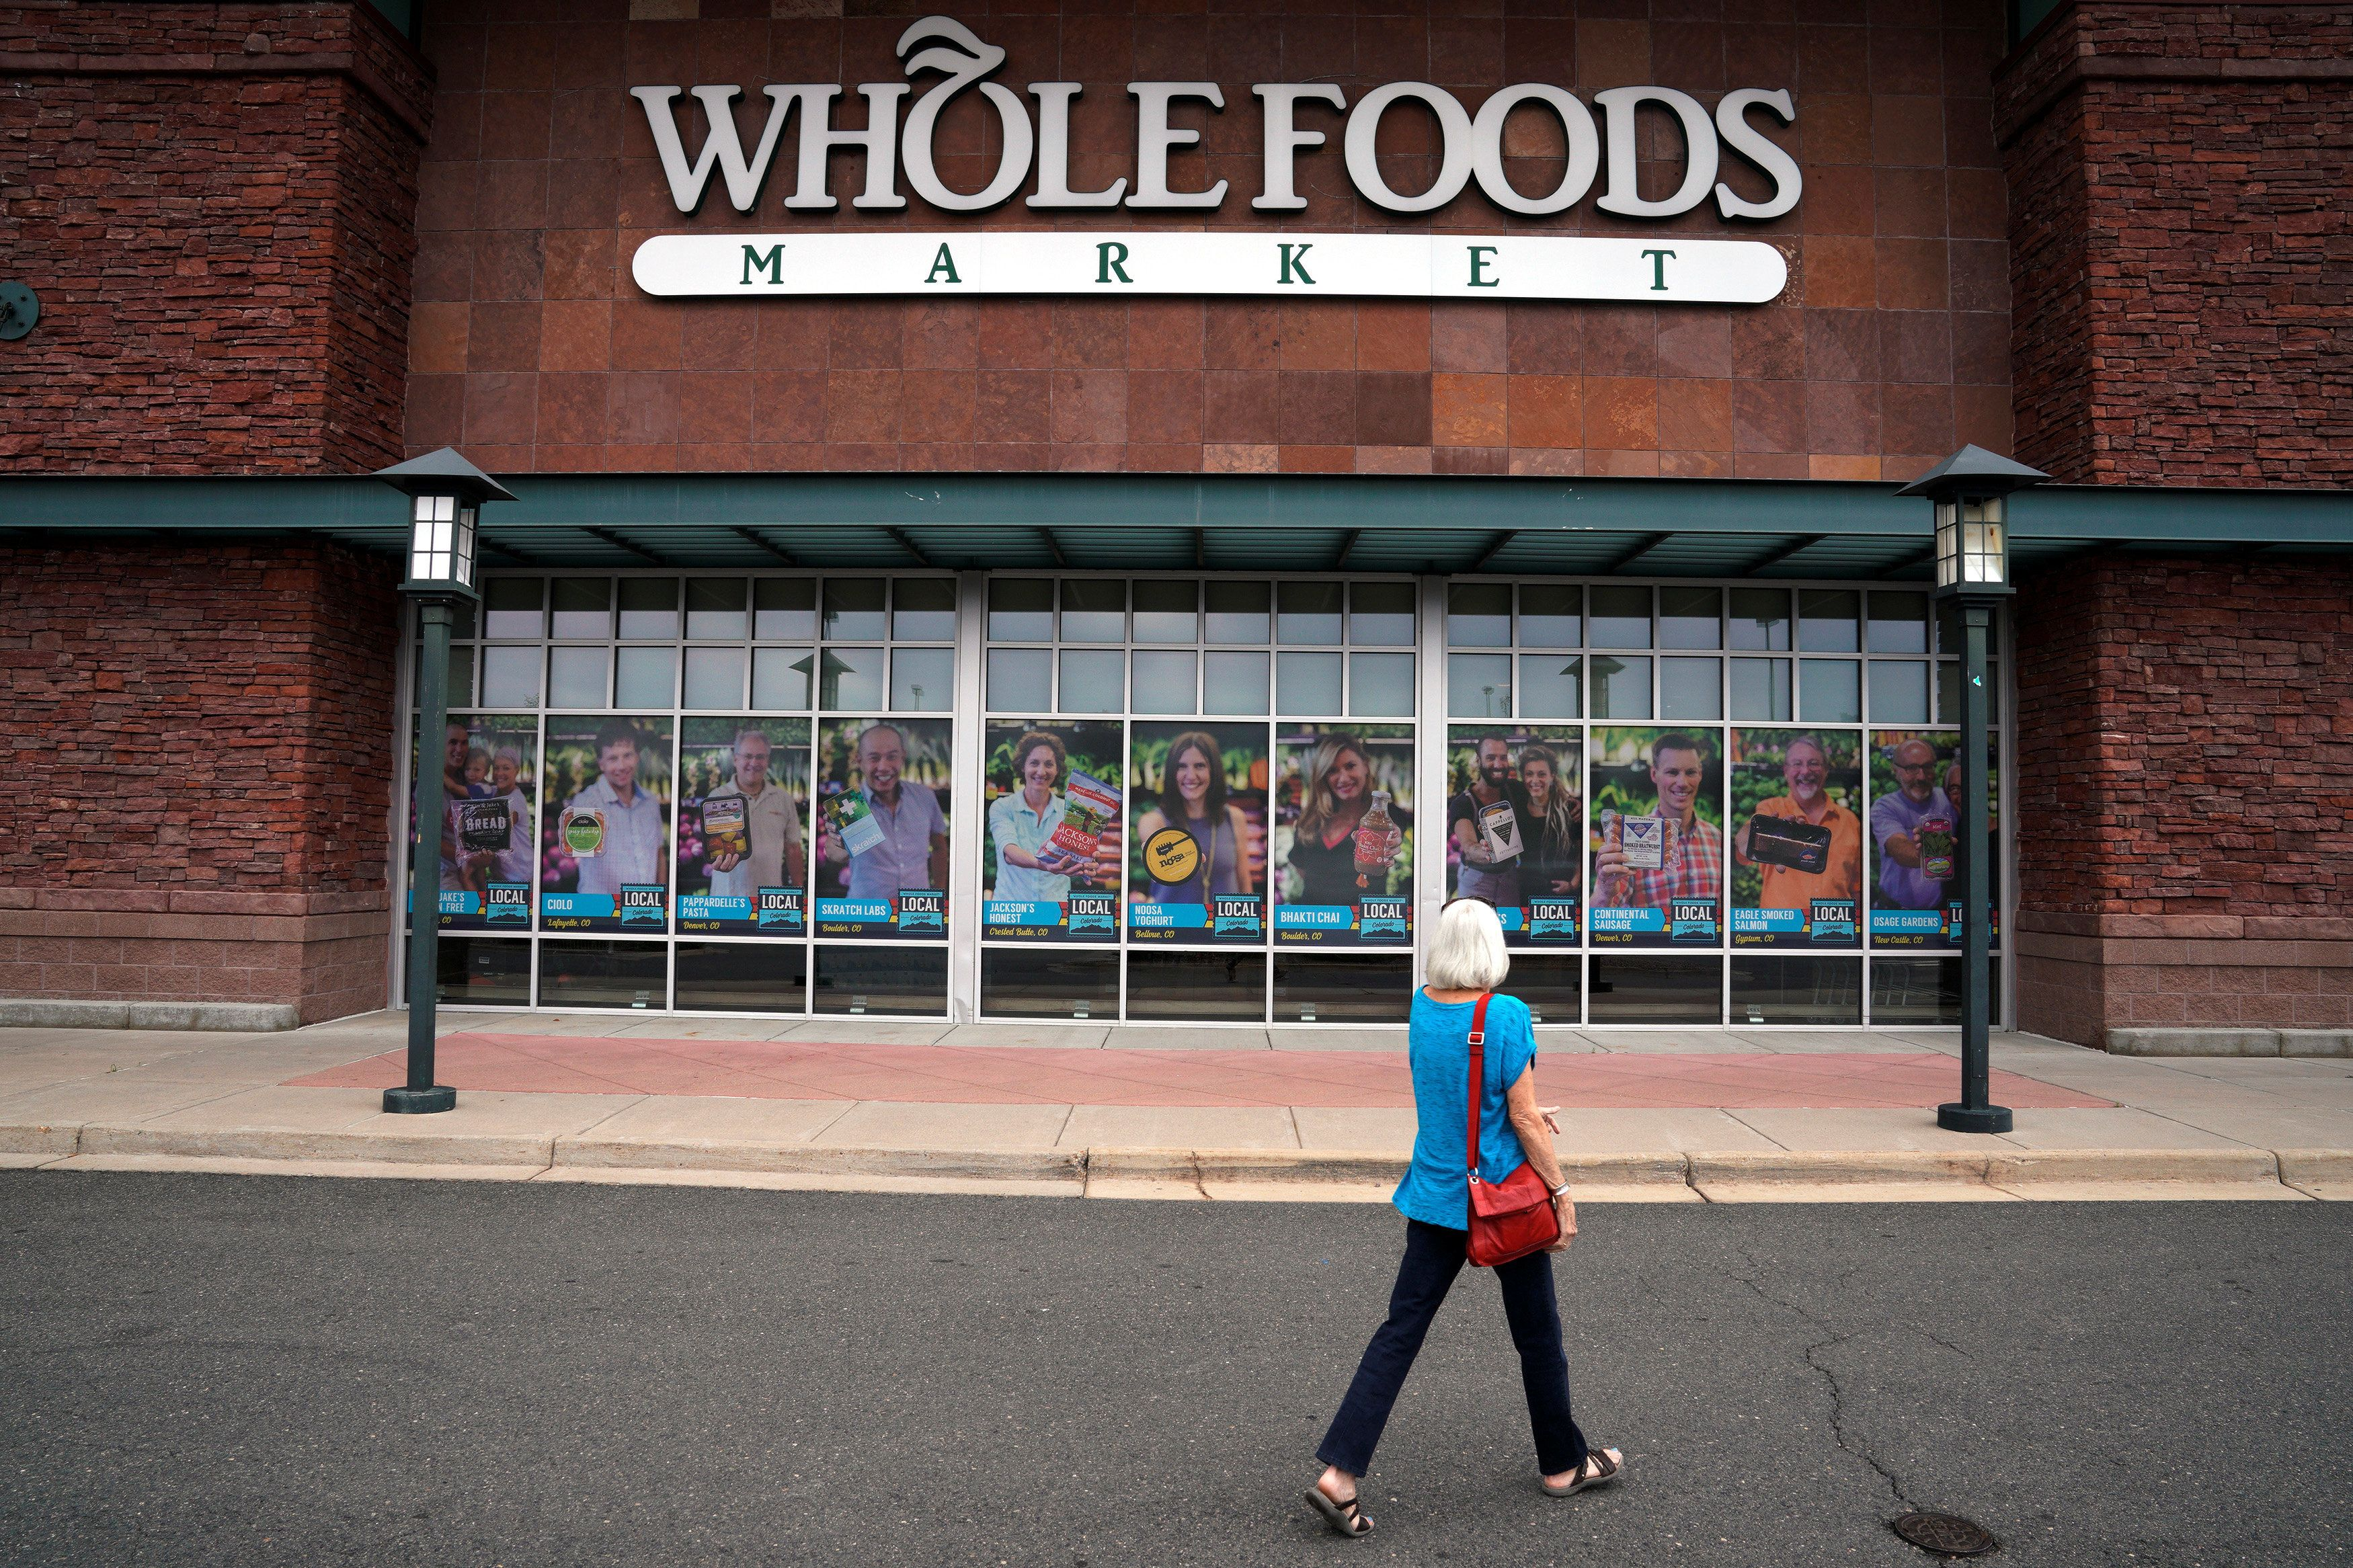 A customer enters the Whole Foods Market in Superior, Colorado United States July 26, 2017.  REUTERS/Rick Wilking